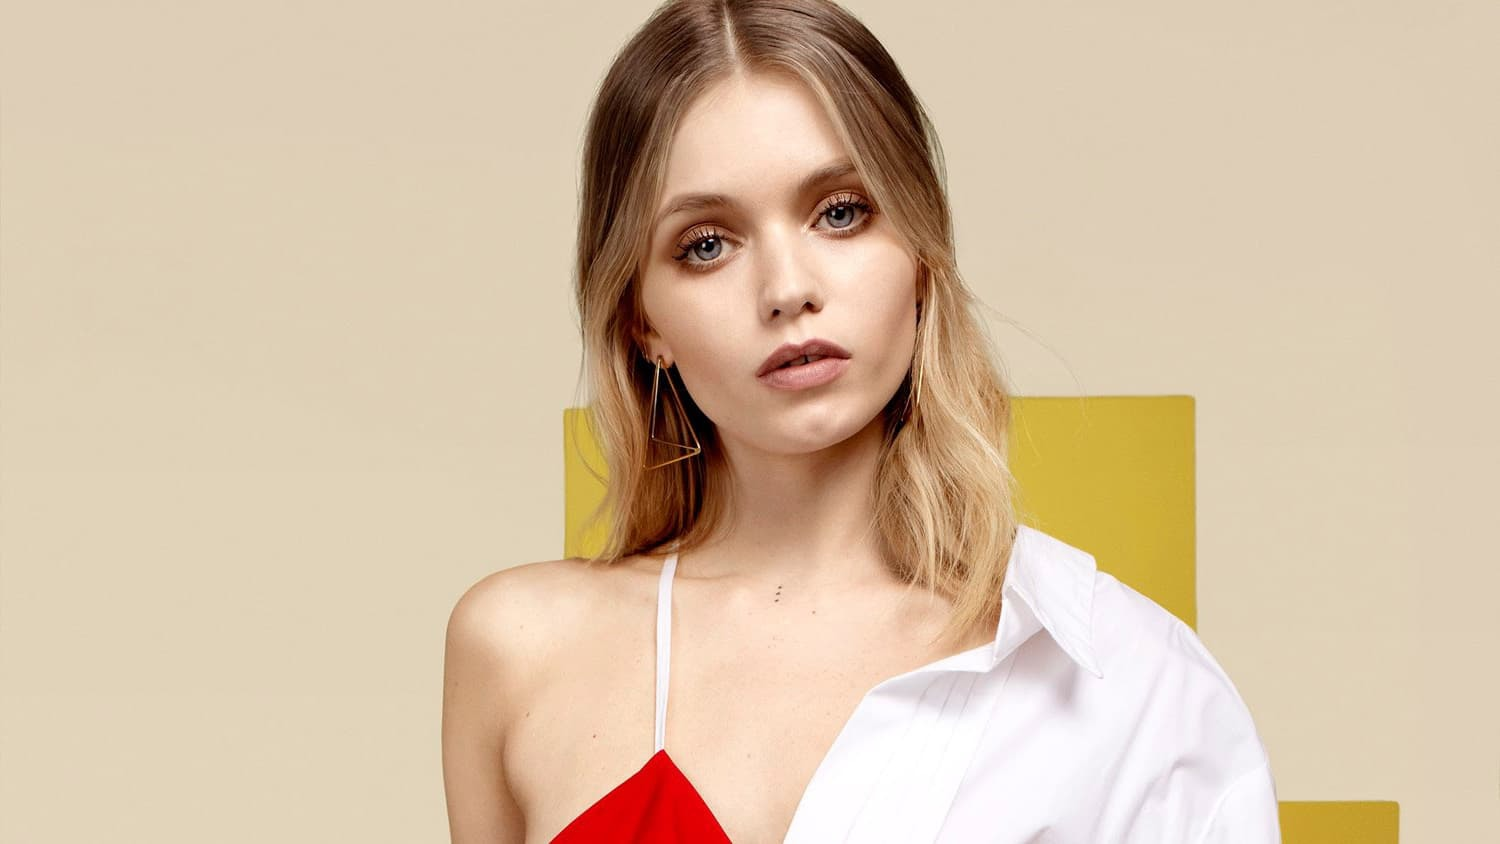 Abbey Lee Kershaw Wallpapers Images Photos Pictures Backgrounds 1500x844